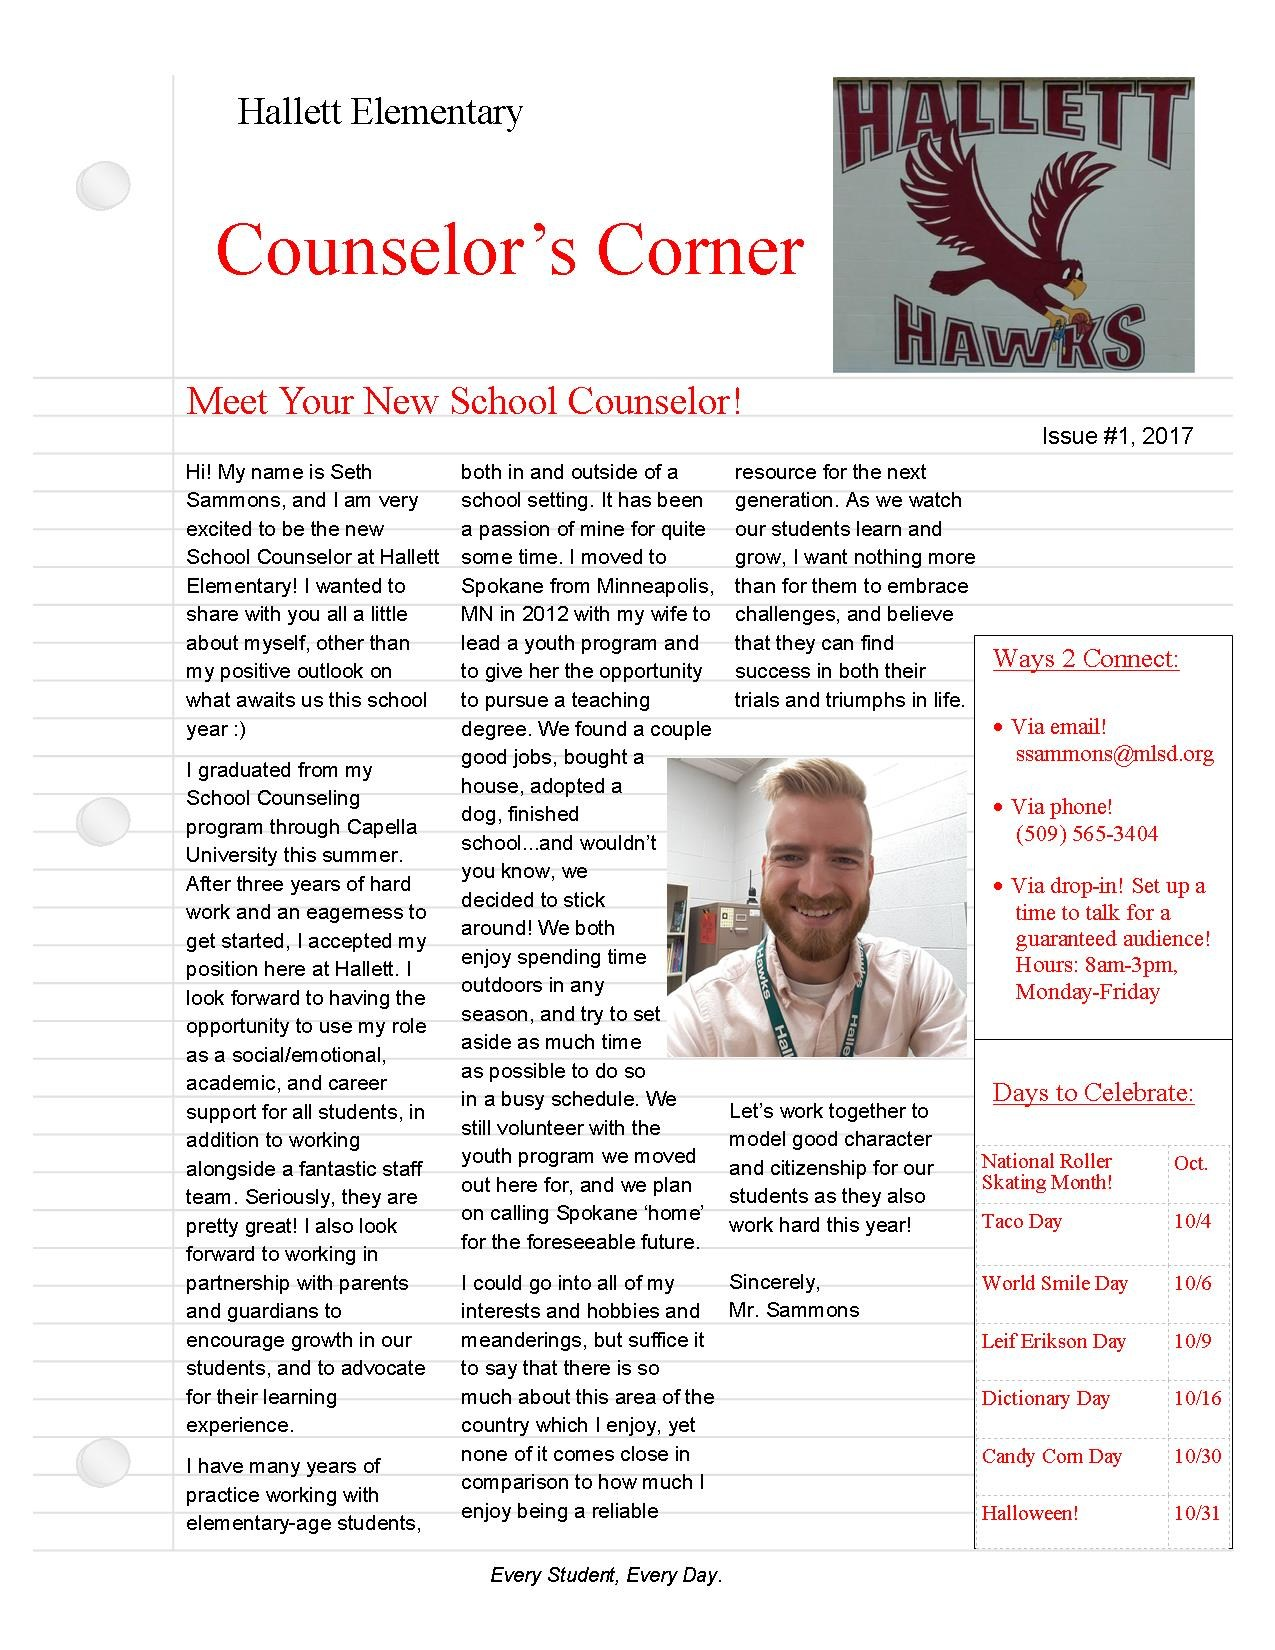 New Counselor Introduction